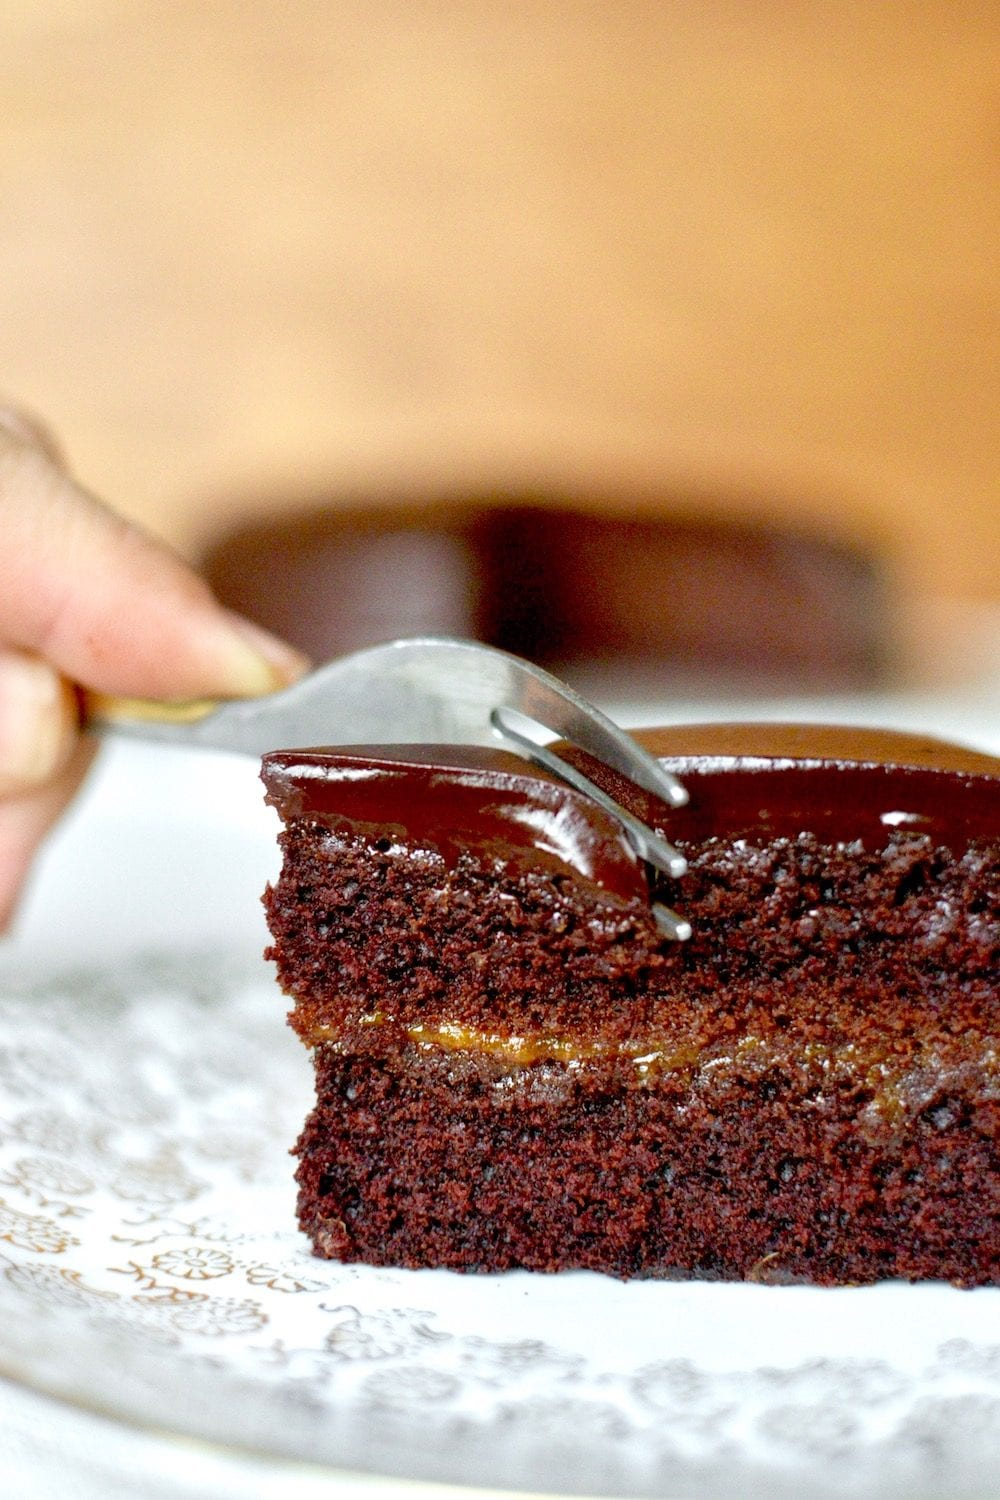 A cake fork cuts through the dark chocolate glaze of the vegan sachertorte